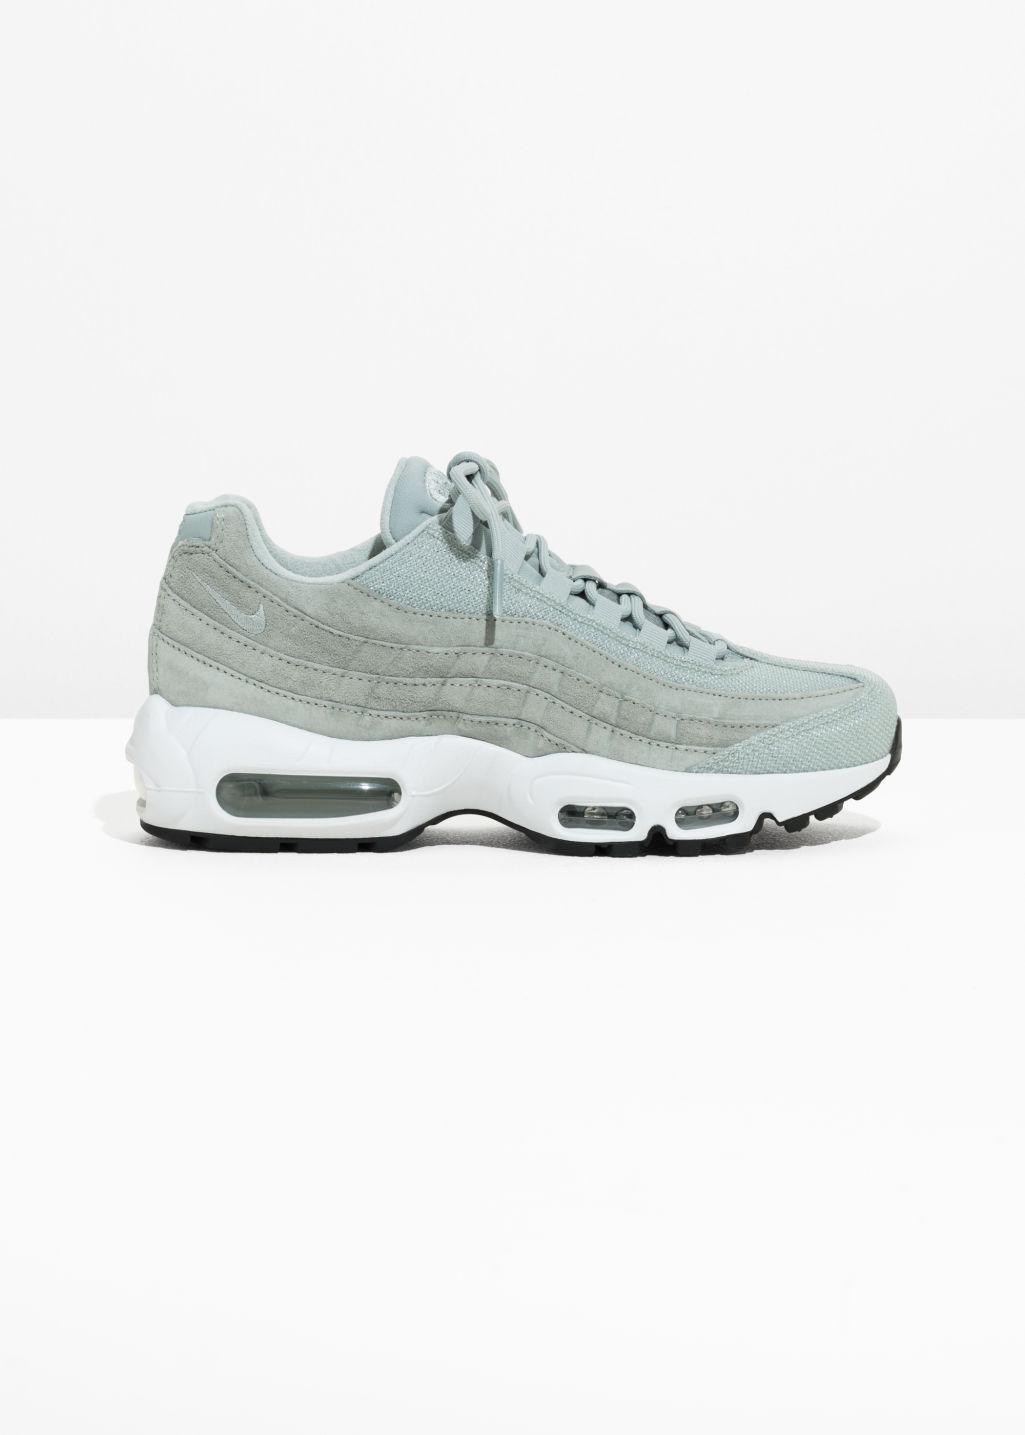 Cheap Sale Classic & OTHER STORIES Nike Air Max 95 PRM Cheap Sale 100% Authentic Sale Outlet Store Browse Cheap Online Huge Surprise 3qeGxW